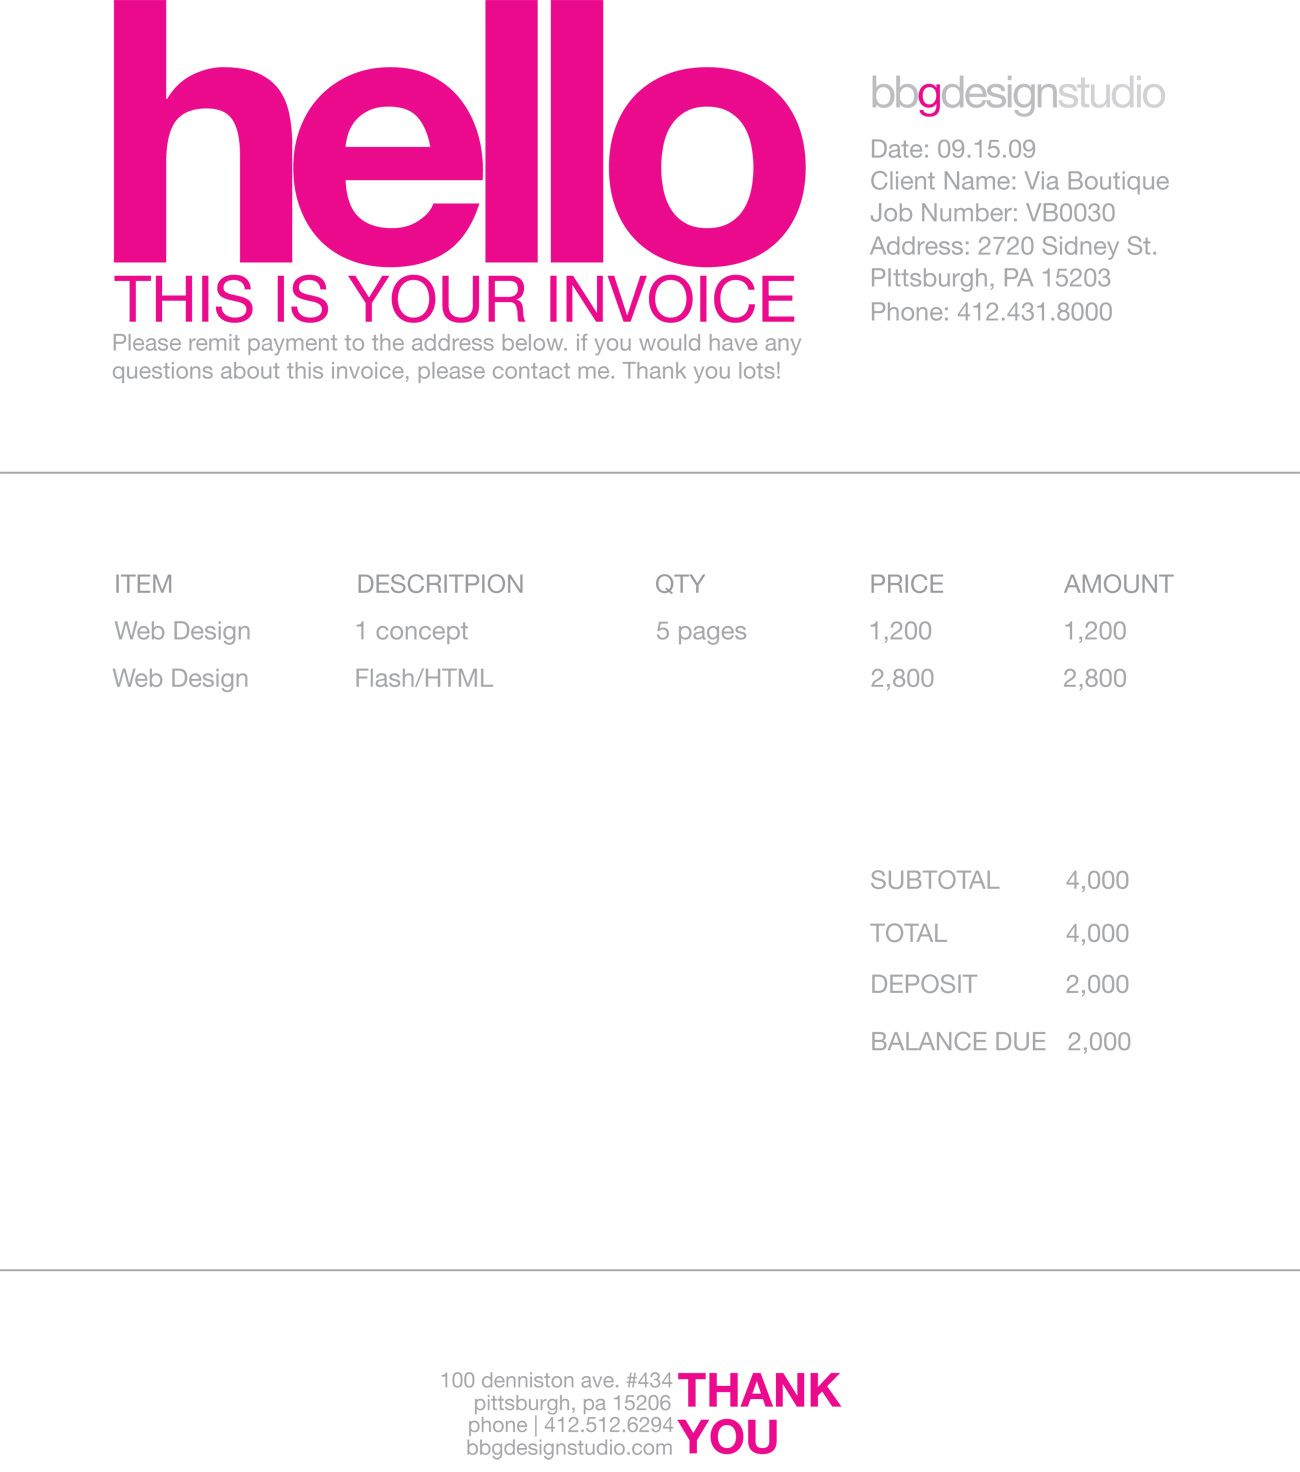 Aldiablosus  Nice  Images About Invoice Design On Pinterest With Lovable How To Do Invoicing Besides Psd Invoice Template Furthermore Invoice Template Editable With Easy On The Eye Sample Invoices In Excel Also Free Invoice Billing Software In Addition Invoice Template Canada And Meaning Of An Invoice As Well As Invoice Recognition Additionally Proforma Invoice In Word Format From Pinterestcom With Aldiablosus  Lovable  Images About Invoice Design On Pinterest With Easy On The Eye How To Do Invoicing Besides Psd Invoice Template Furthermore Invoice Template Editable And Nice Sample Invoices In Excel Also Free Invoice Billing Software In Addition Invoice Template Canada From Pinterestcom